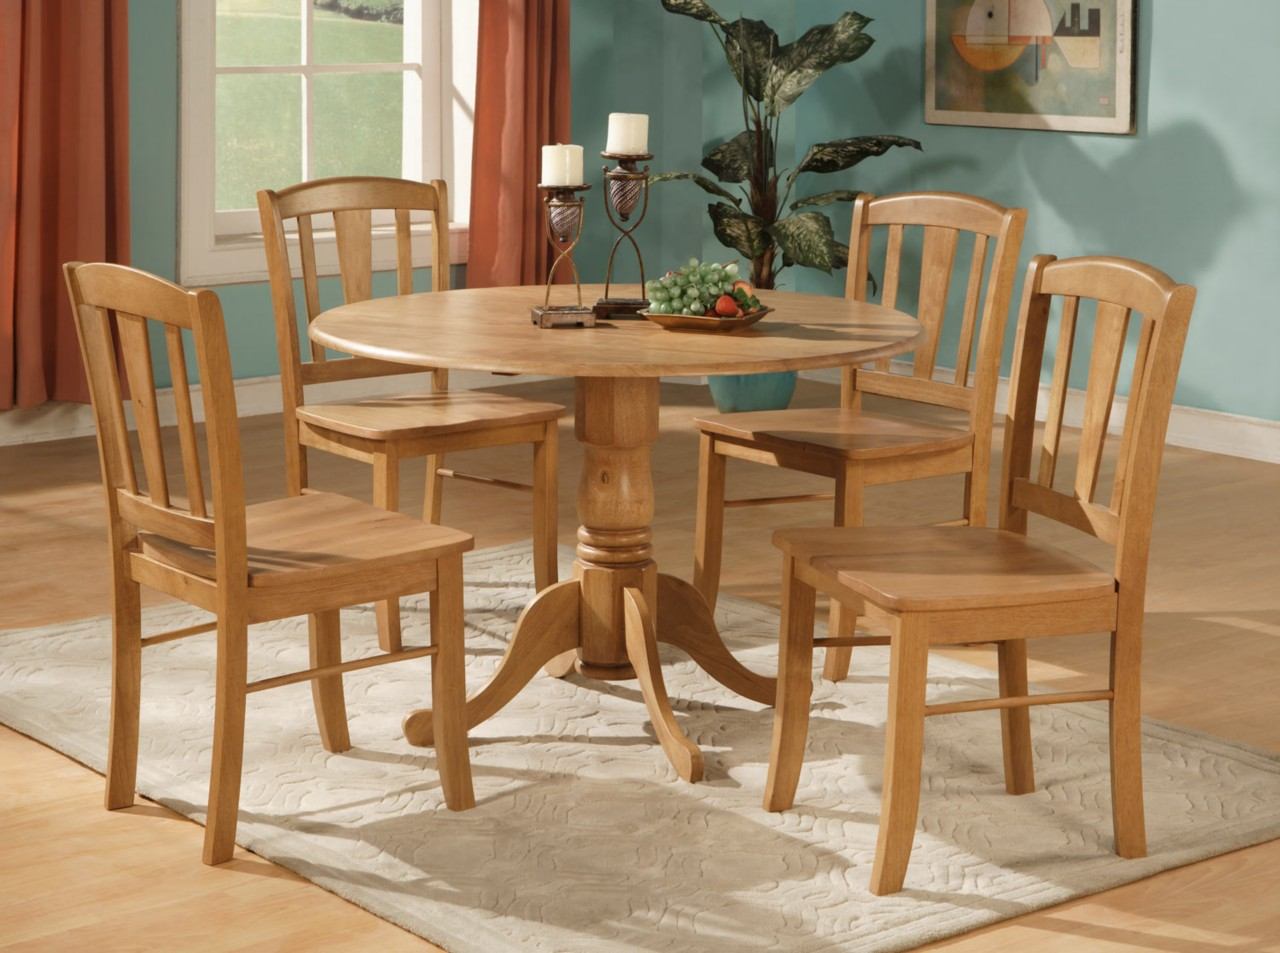 Round Kitchen Table and Chairs  eBay